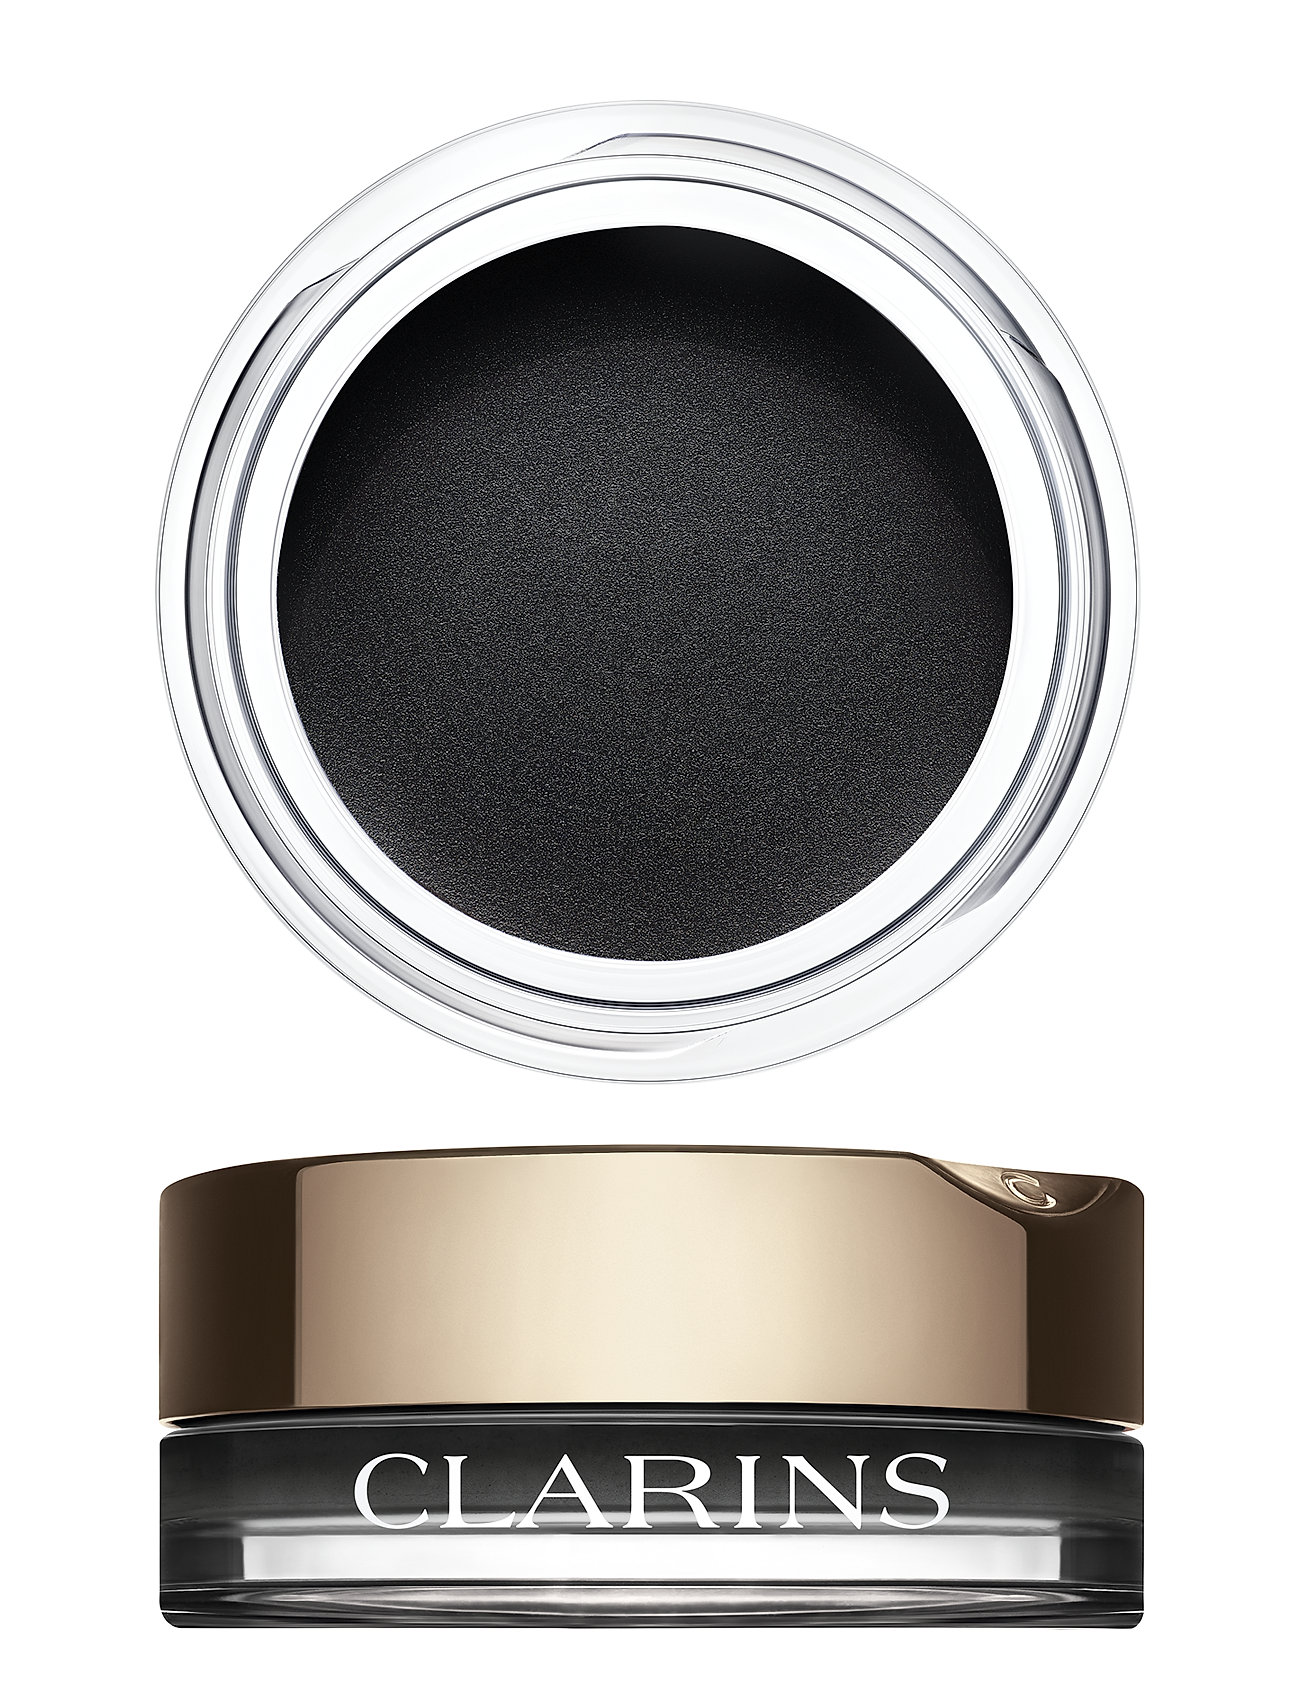 Image of Mono Colour Eyeshadow 06 Women In Black Mat Beauty WOMEN Makeup Eyes Eyeshadows Eyeshadow - Not Palettes Sort Clarins (3133211685)